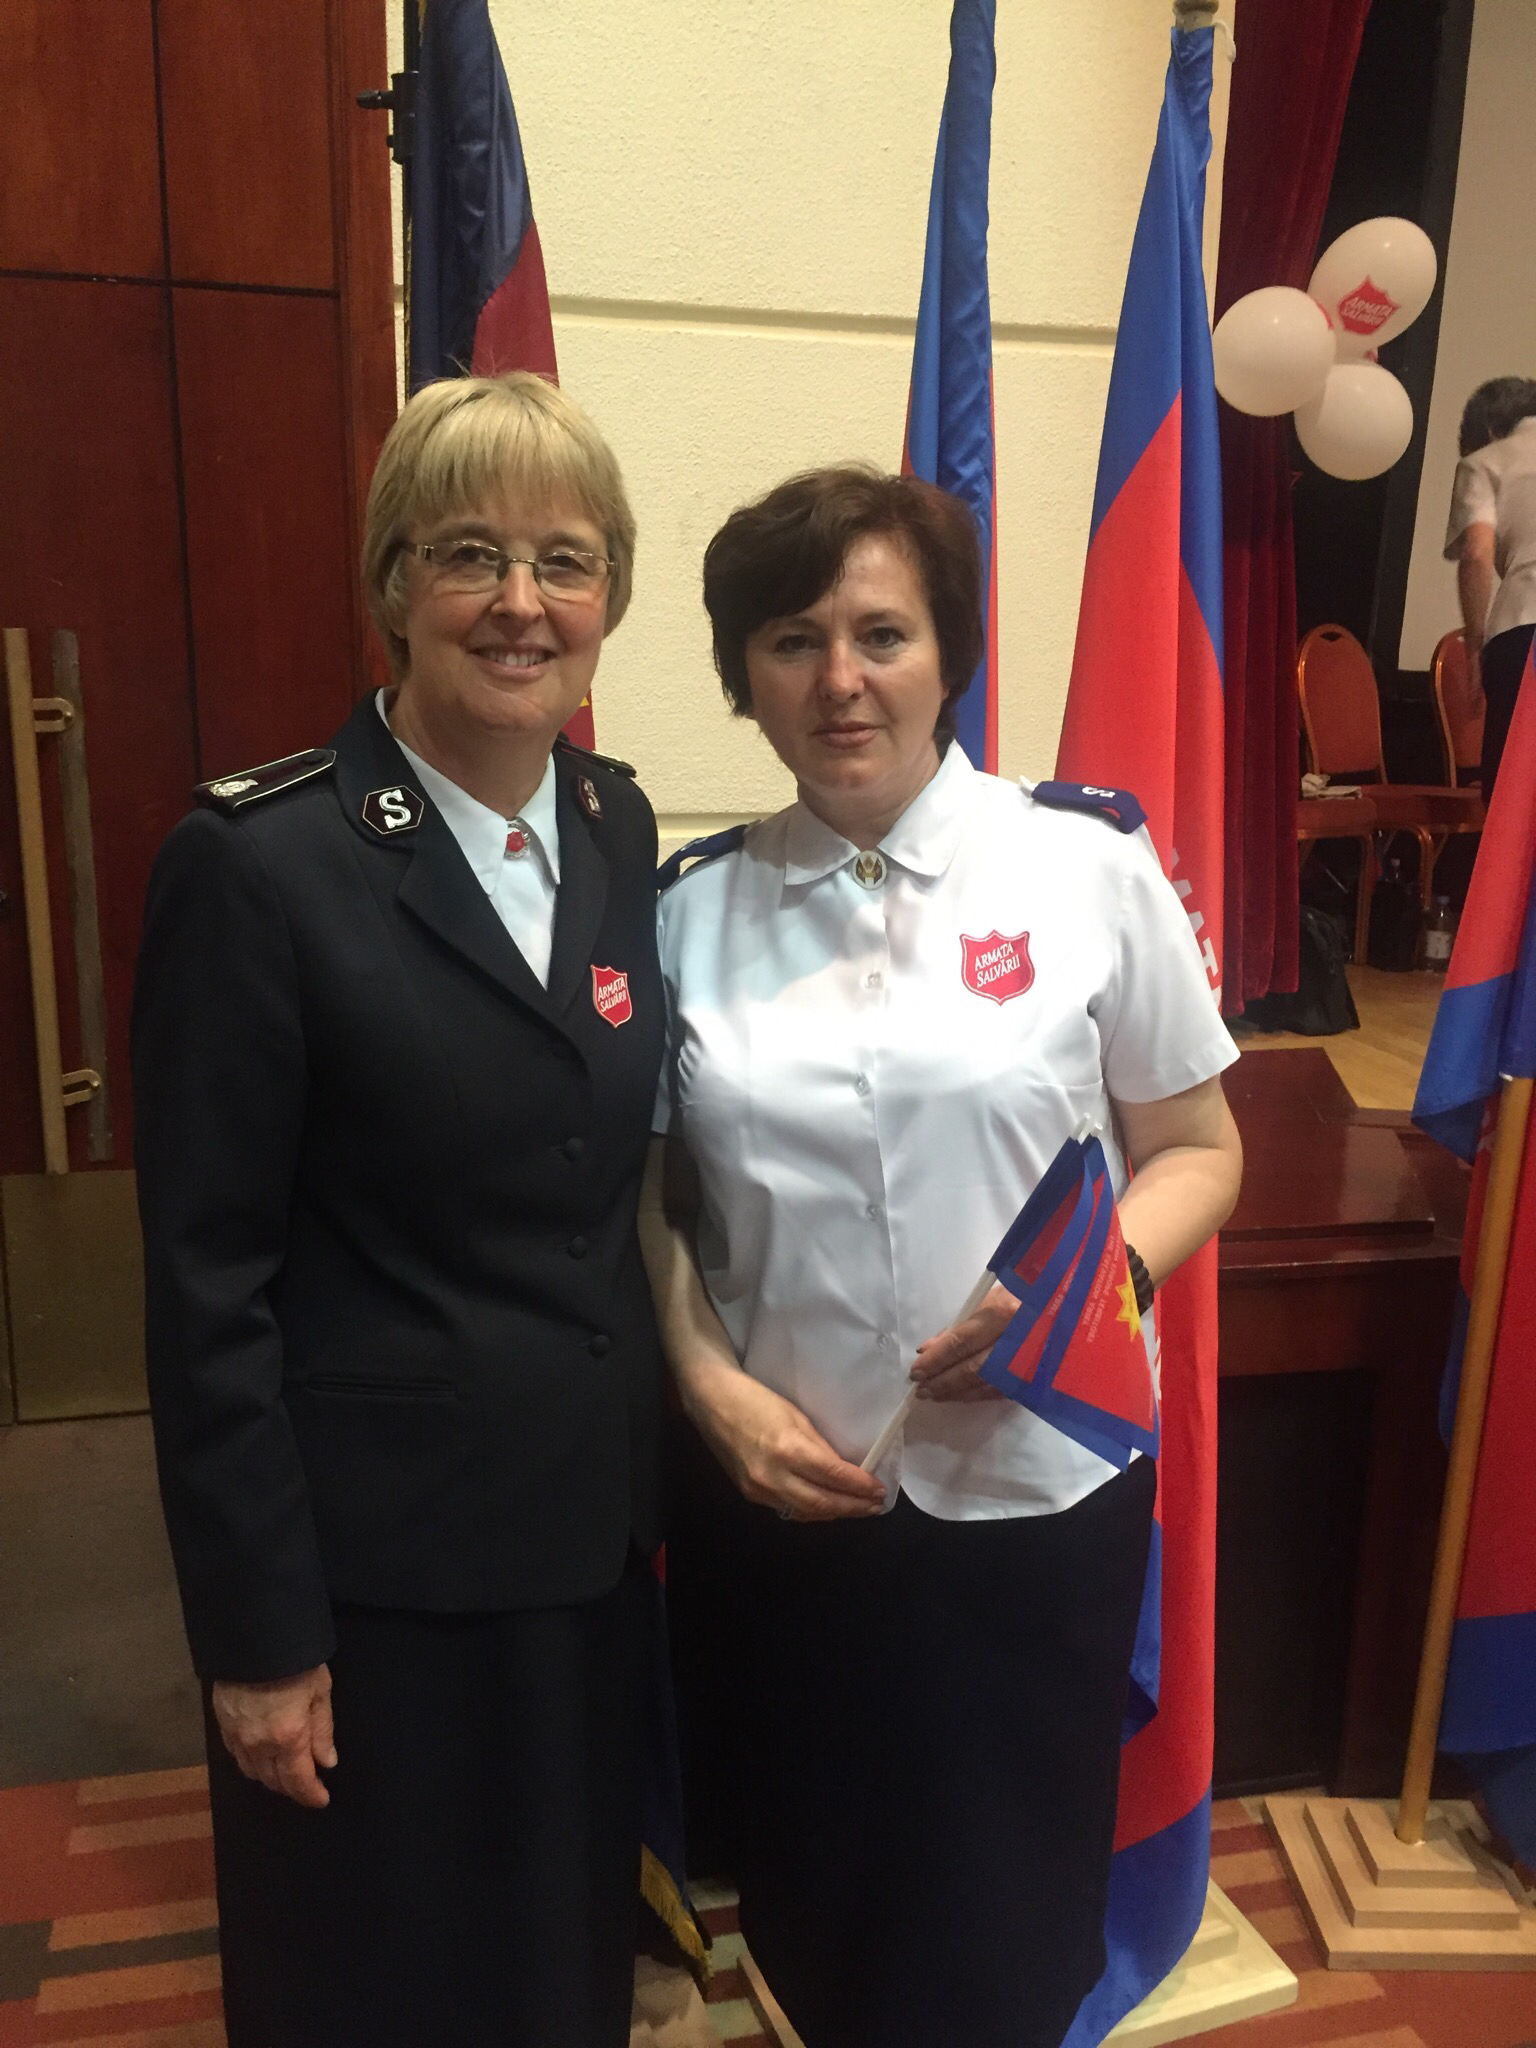 Commissioner Silvia with Romanian woman